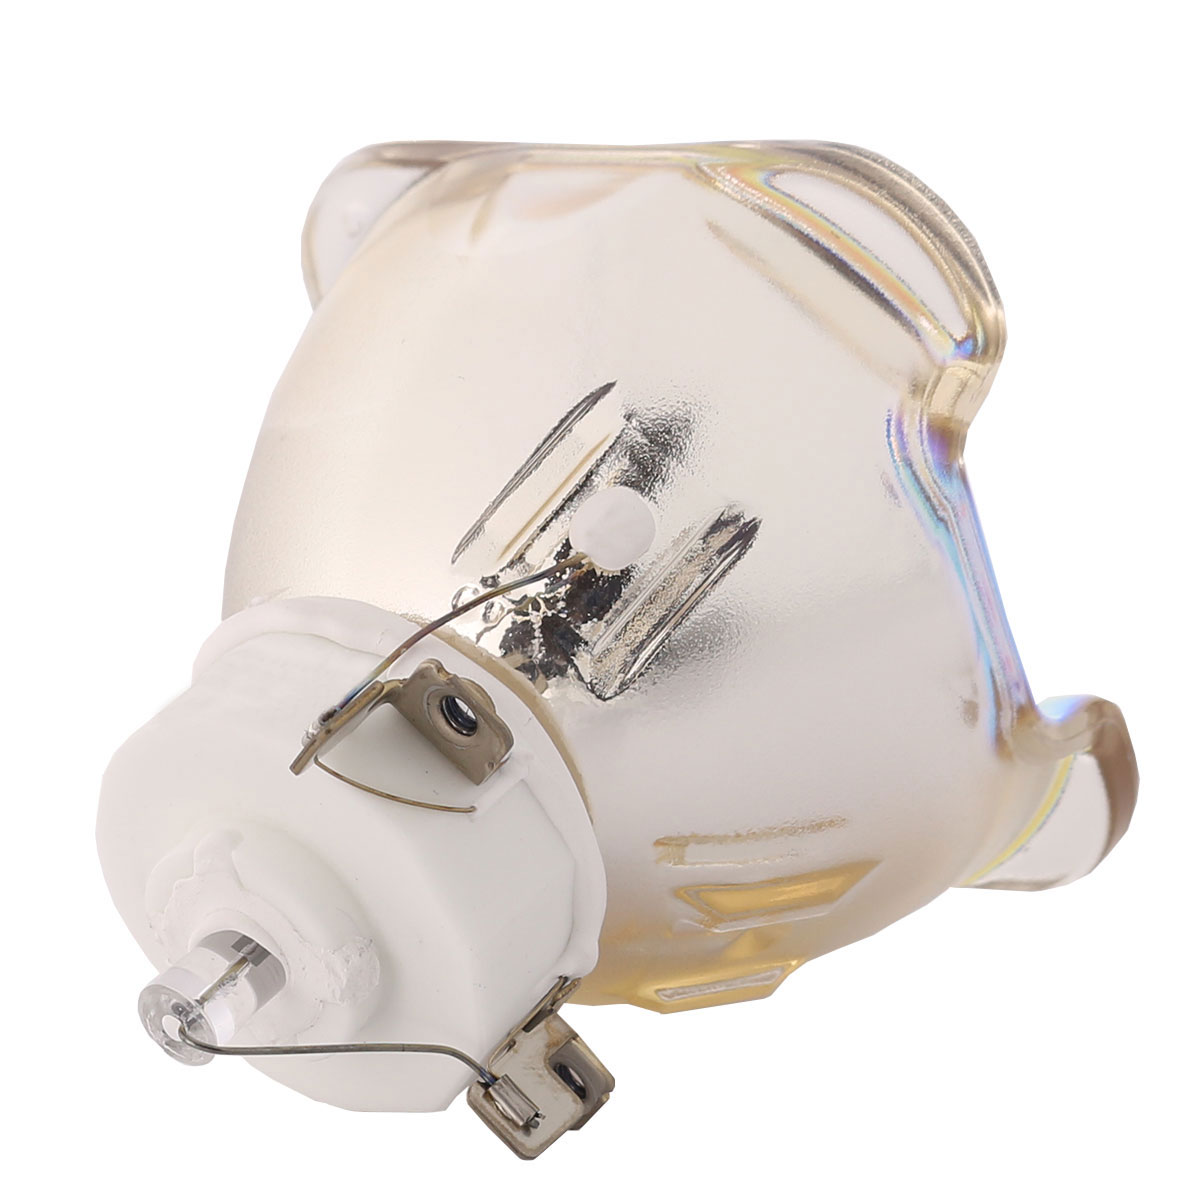 Lutema Economy for BenQ PU9730 Projector Lamp (Bulb Only) - image 3 of 5